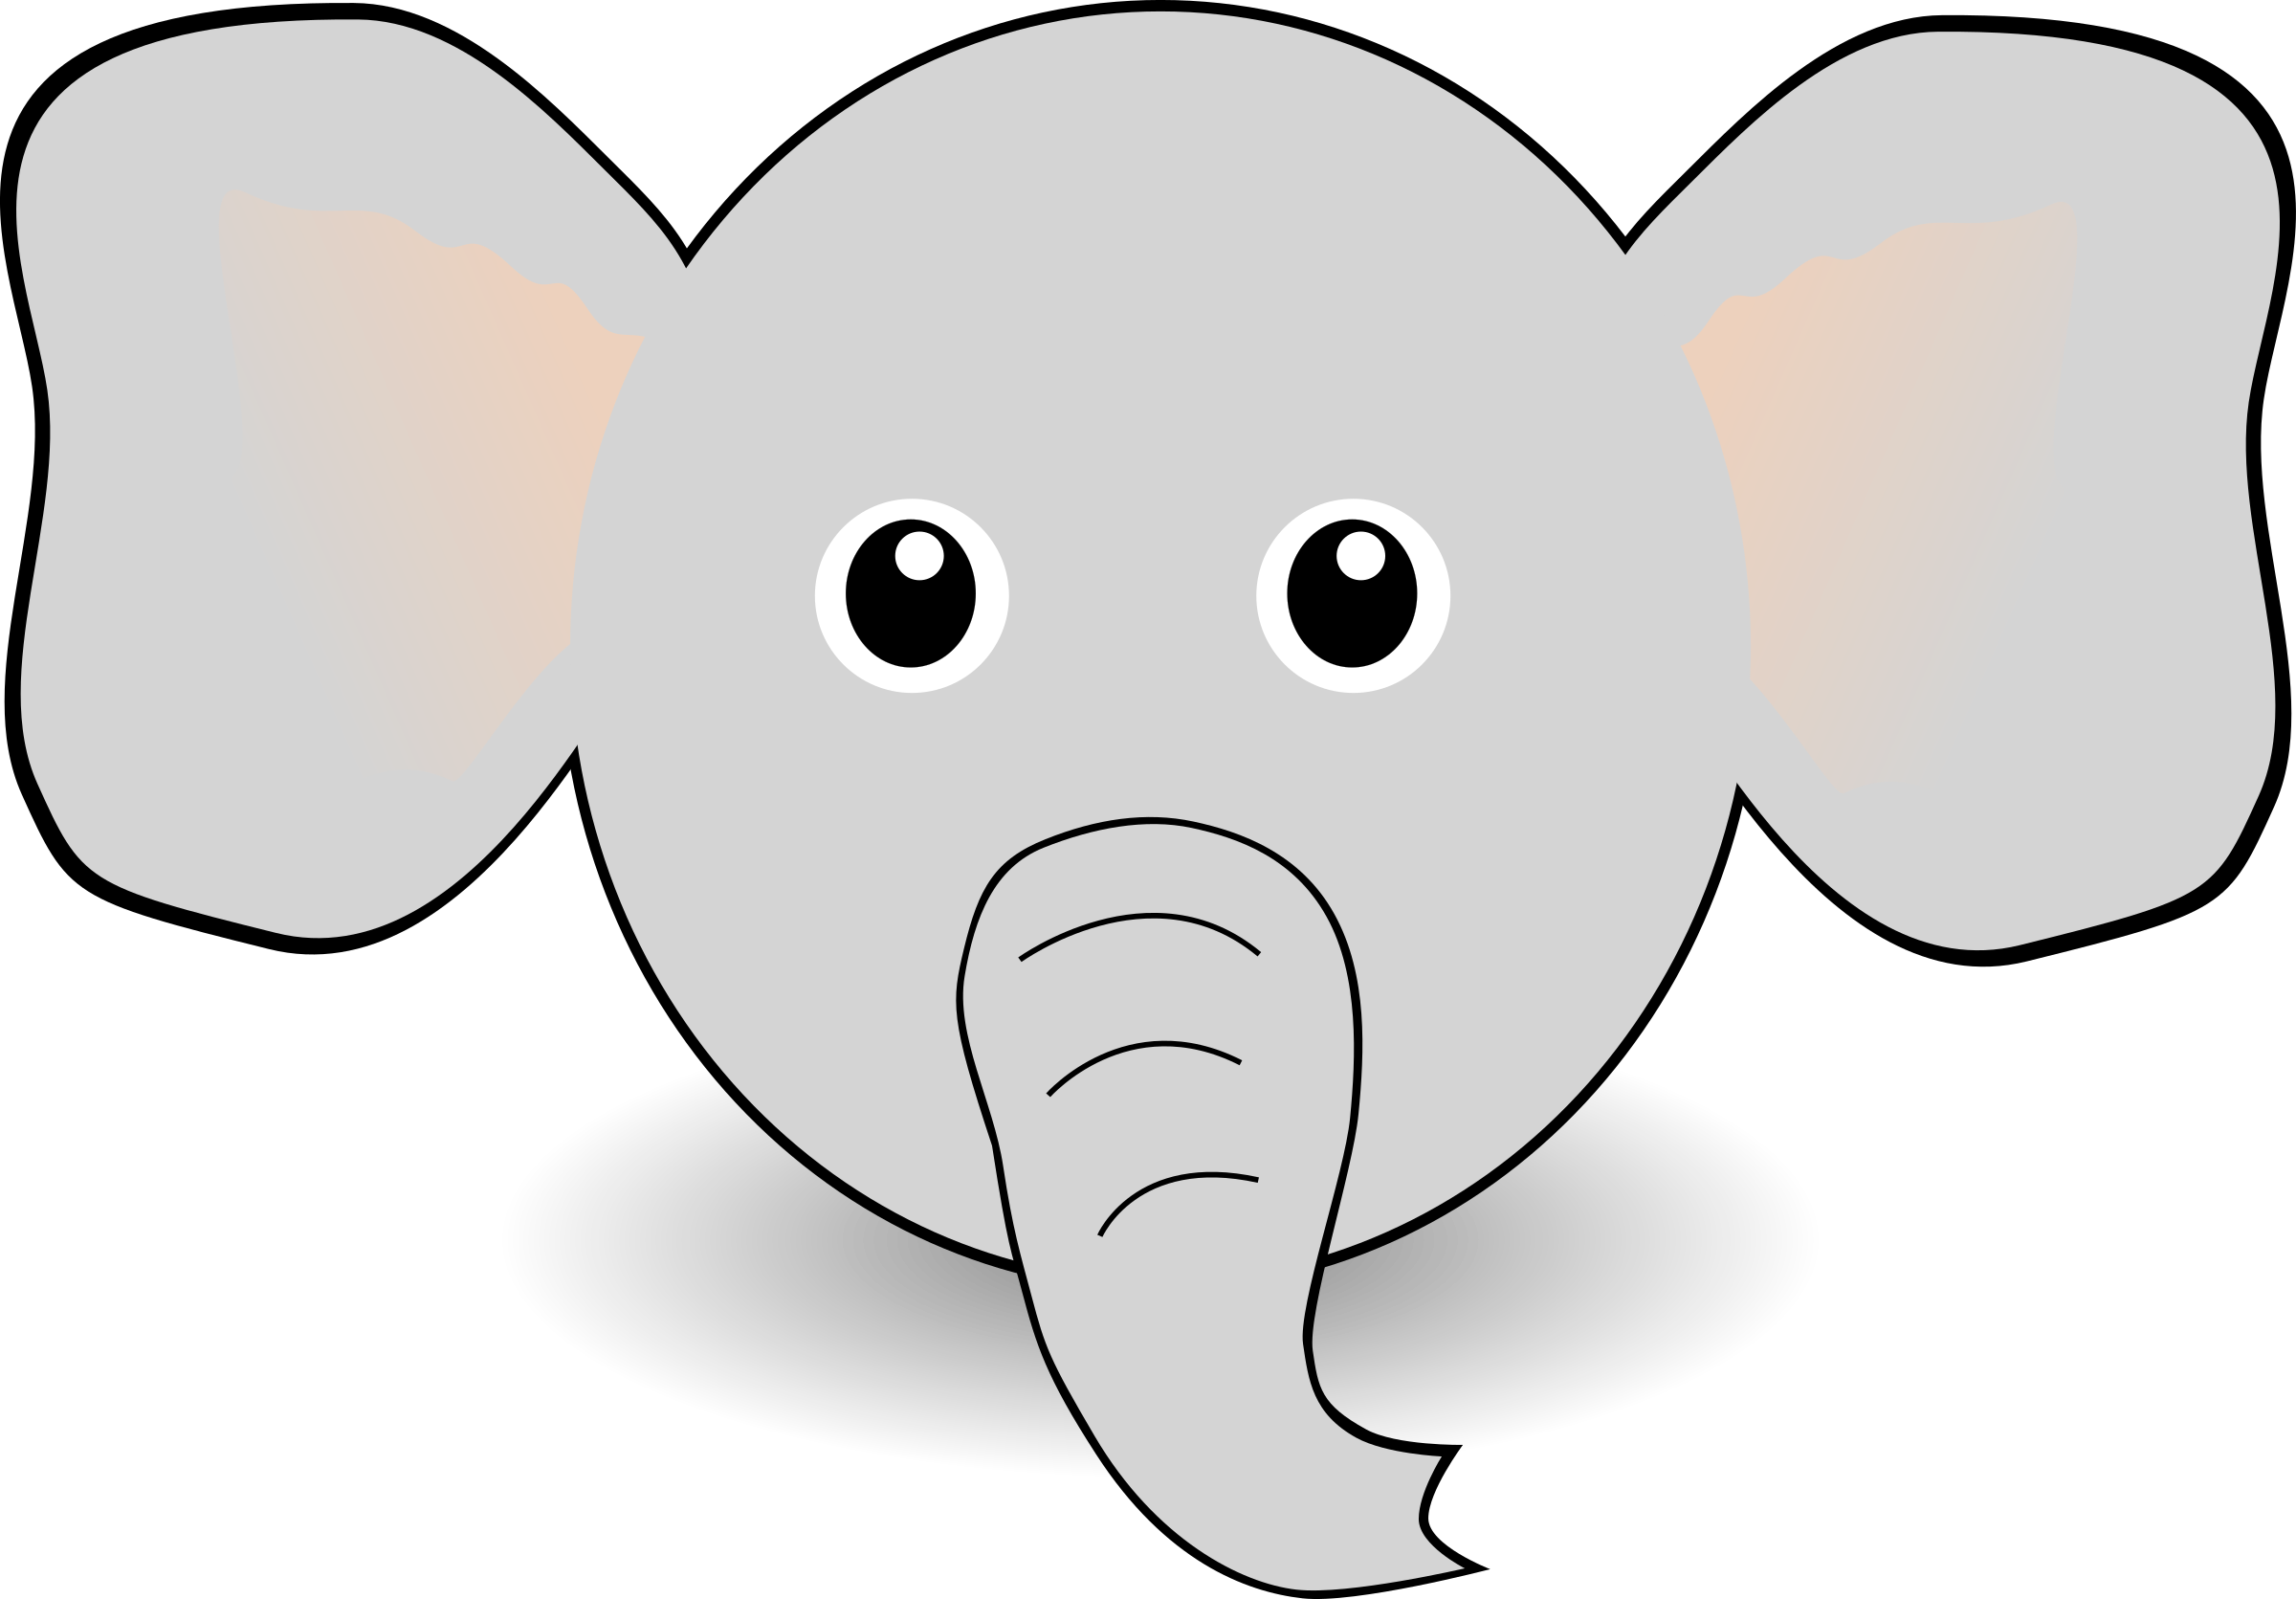 microsoft clip art elephant - photo #40